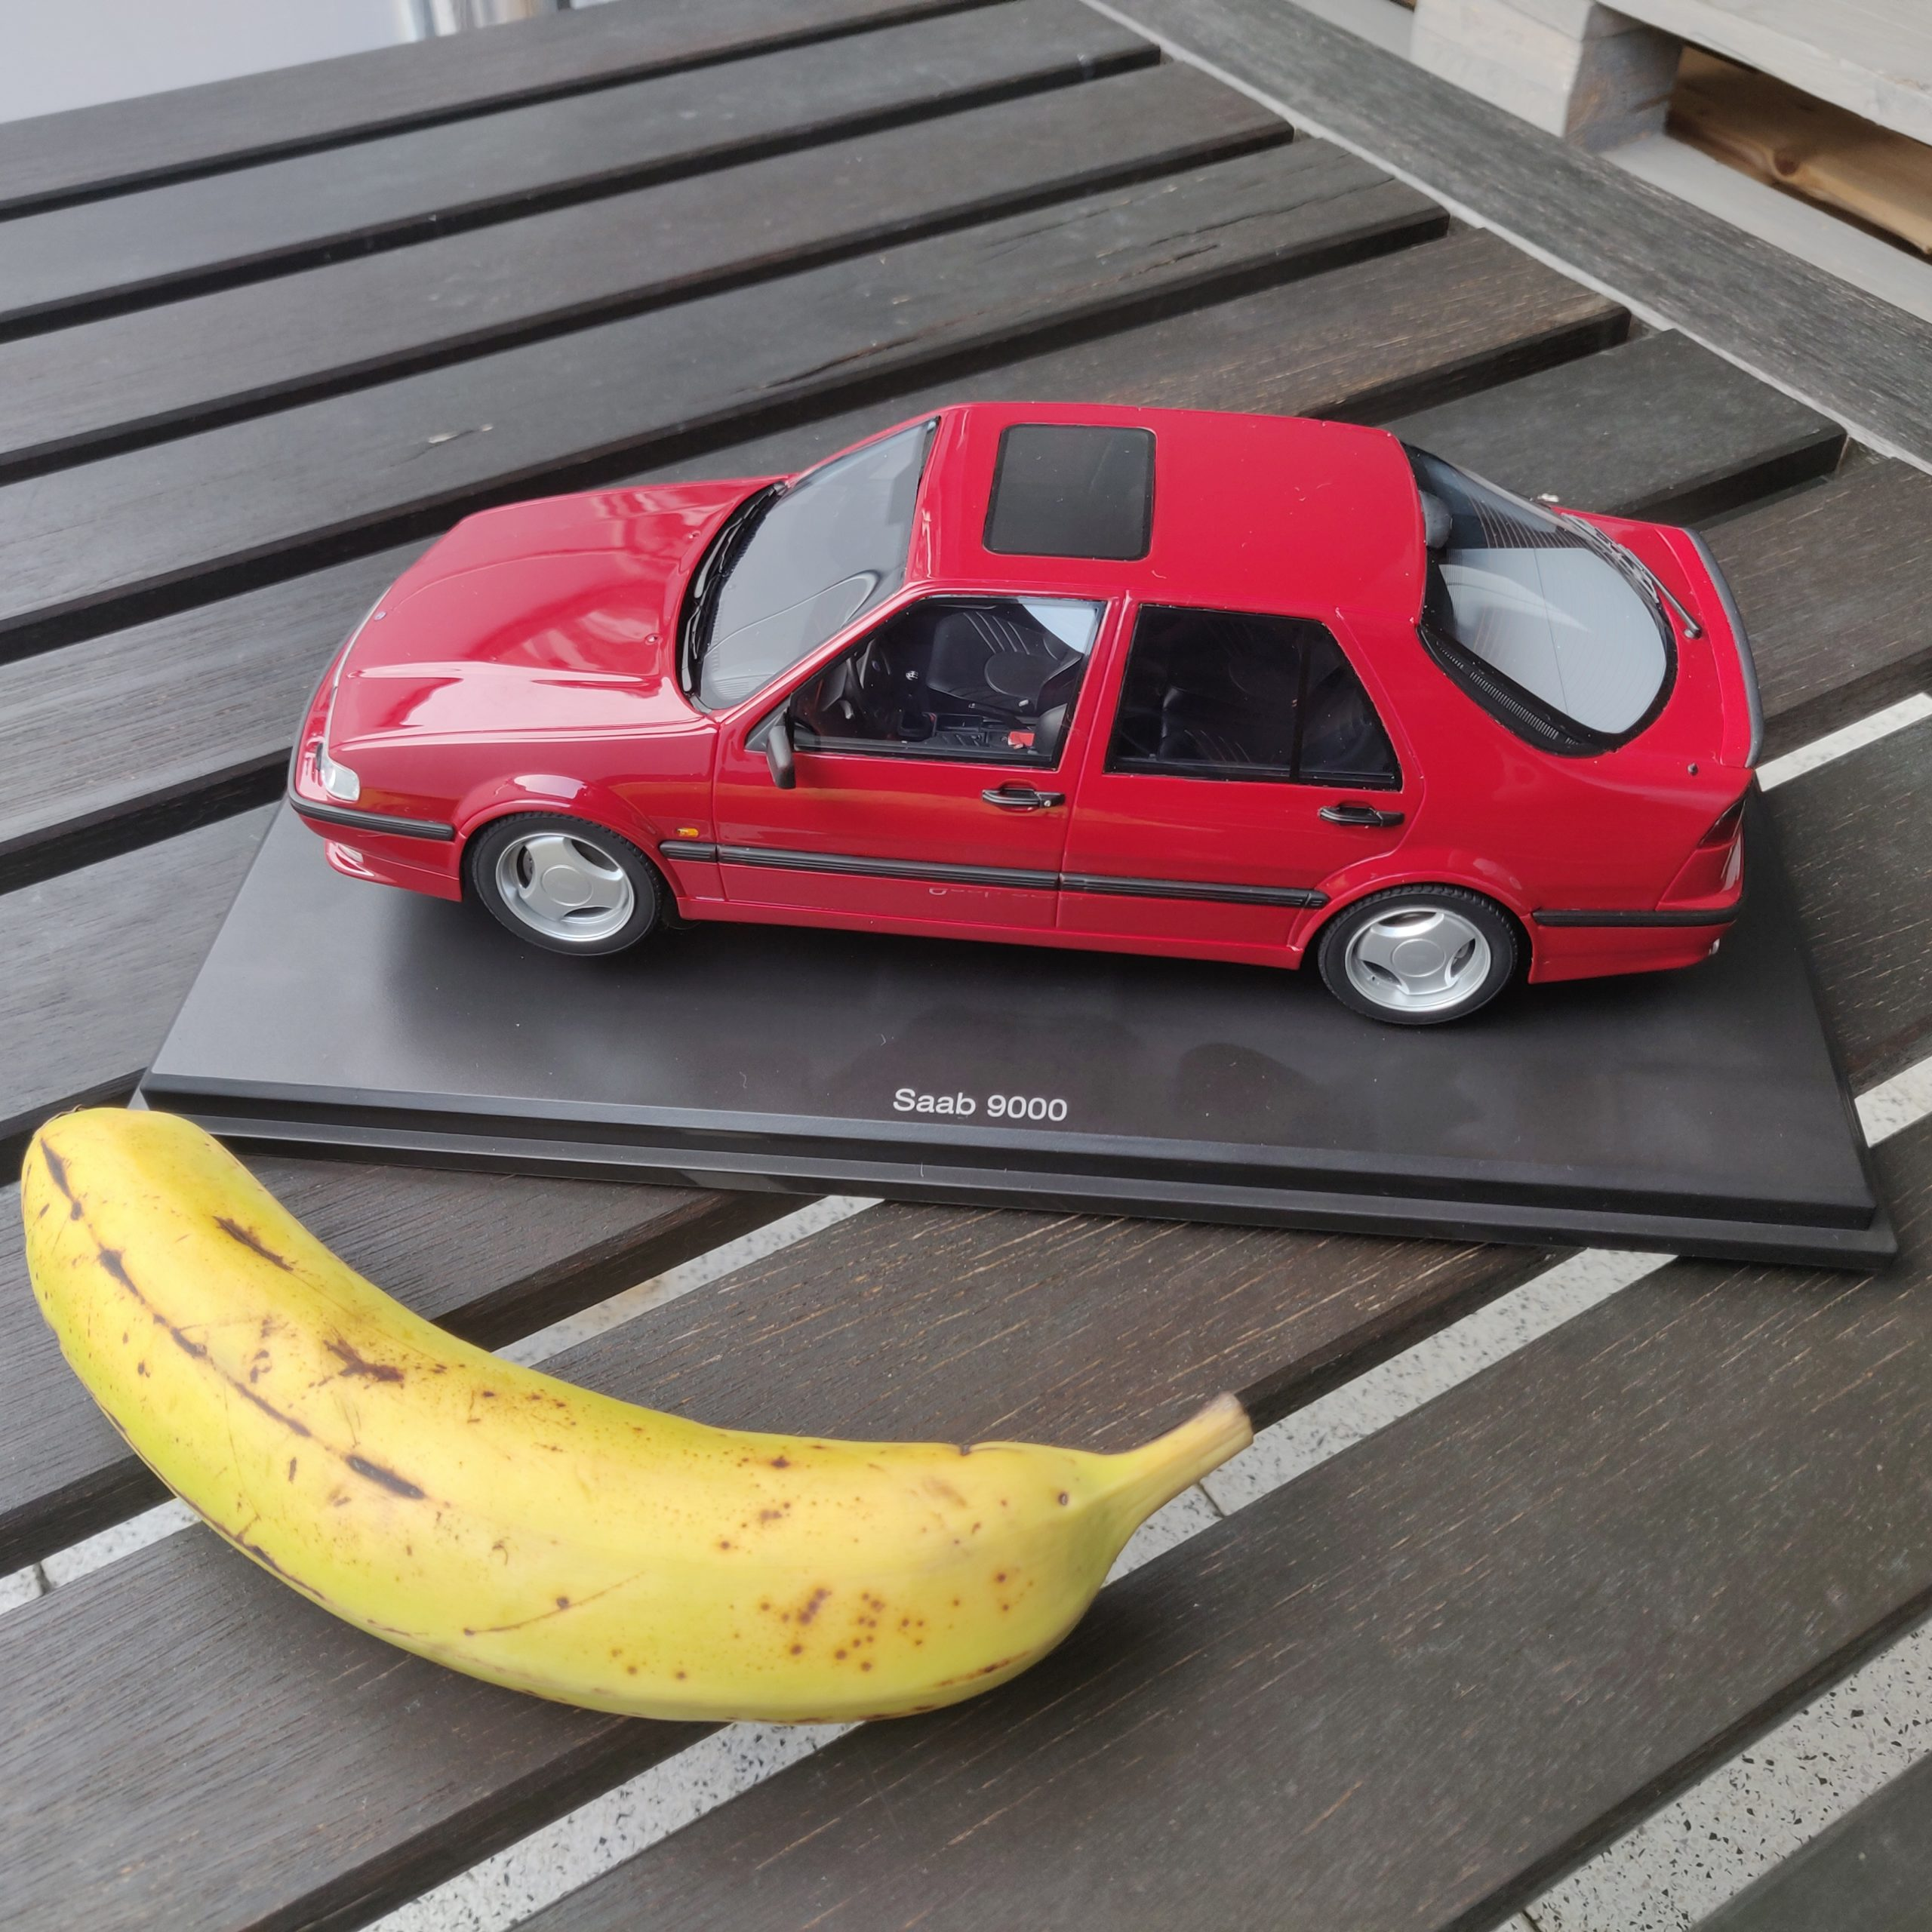 Saab 9000 with Banana